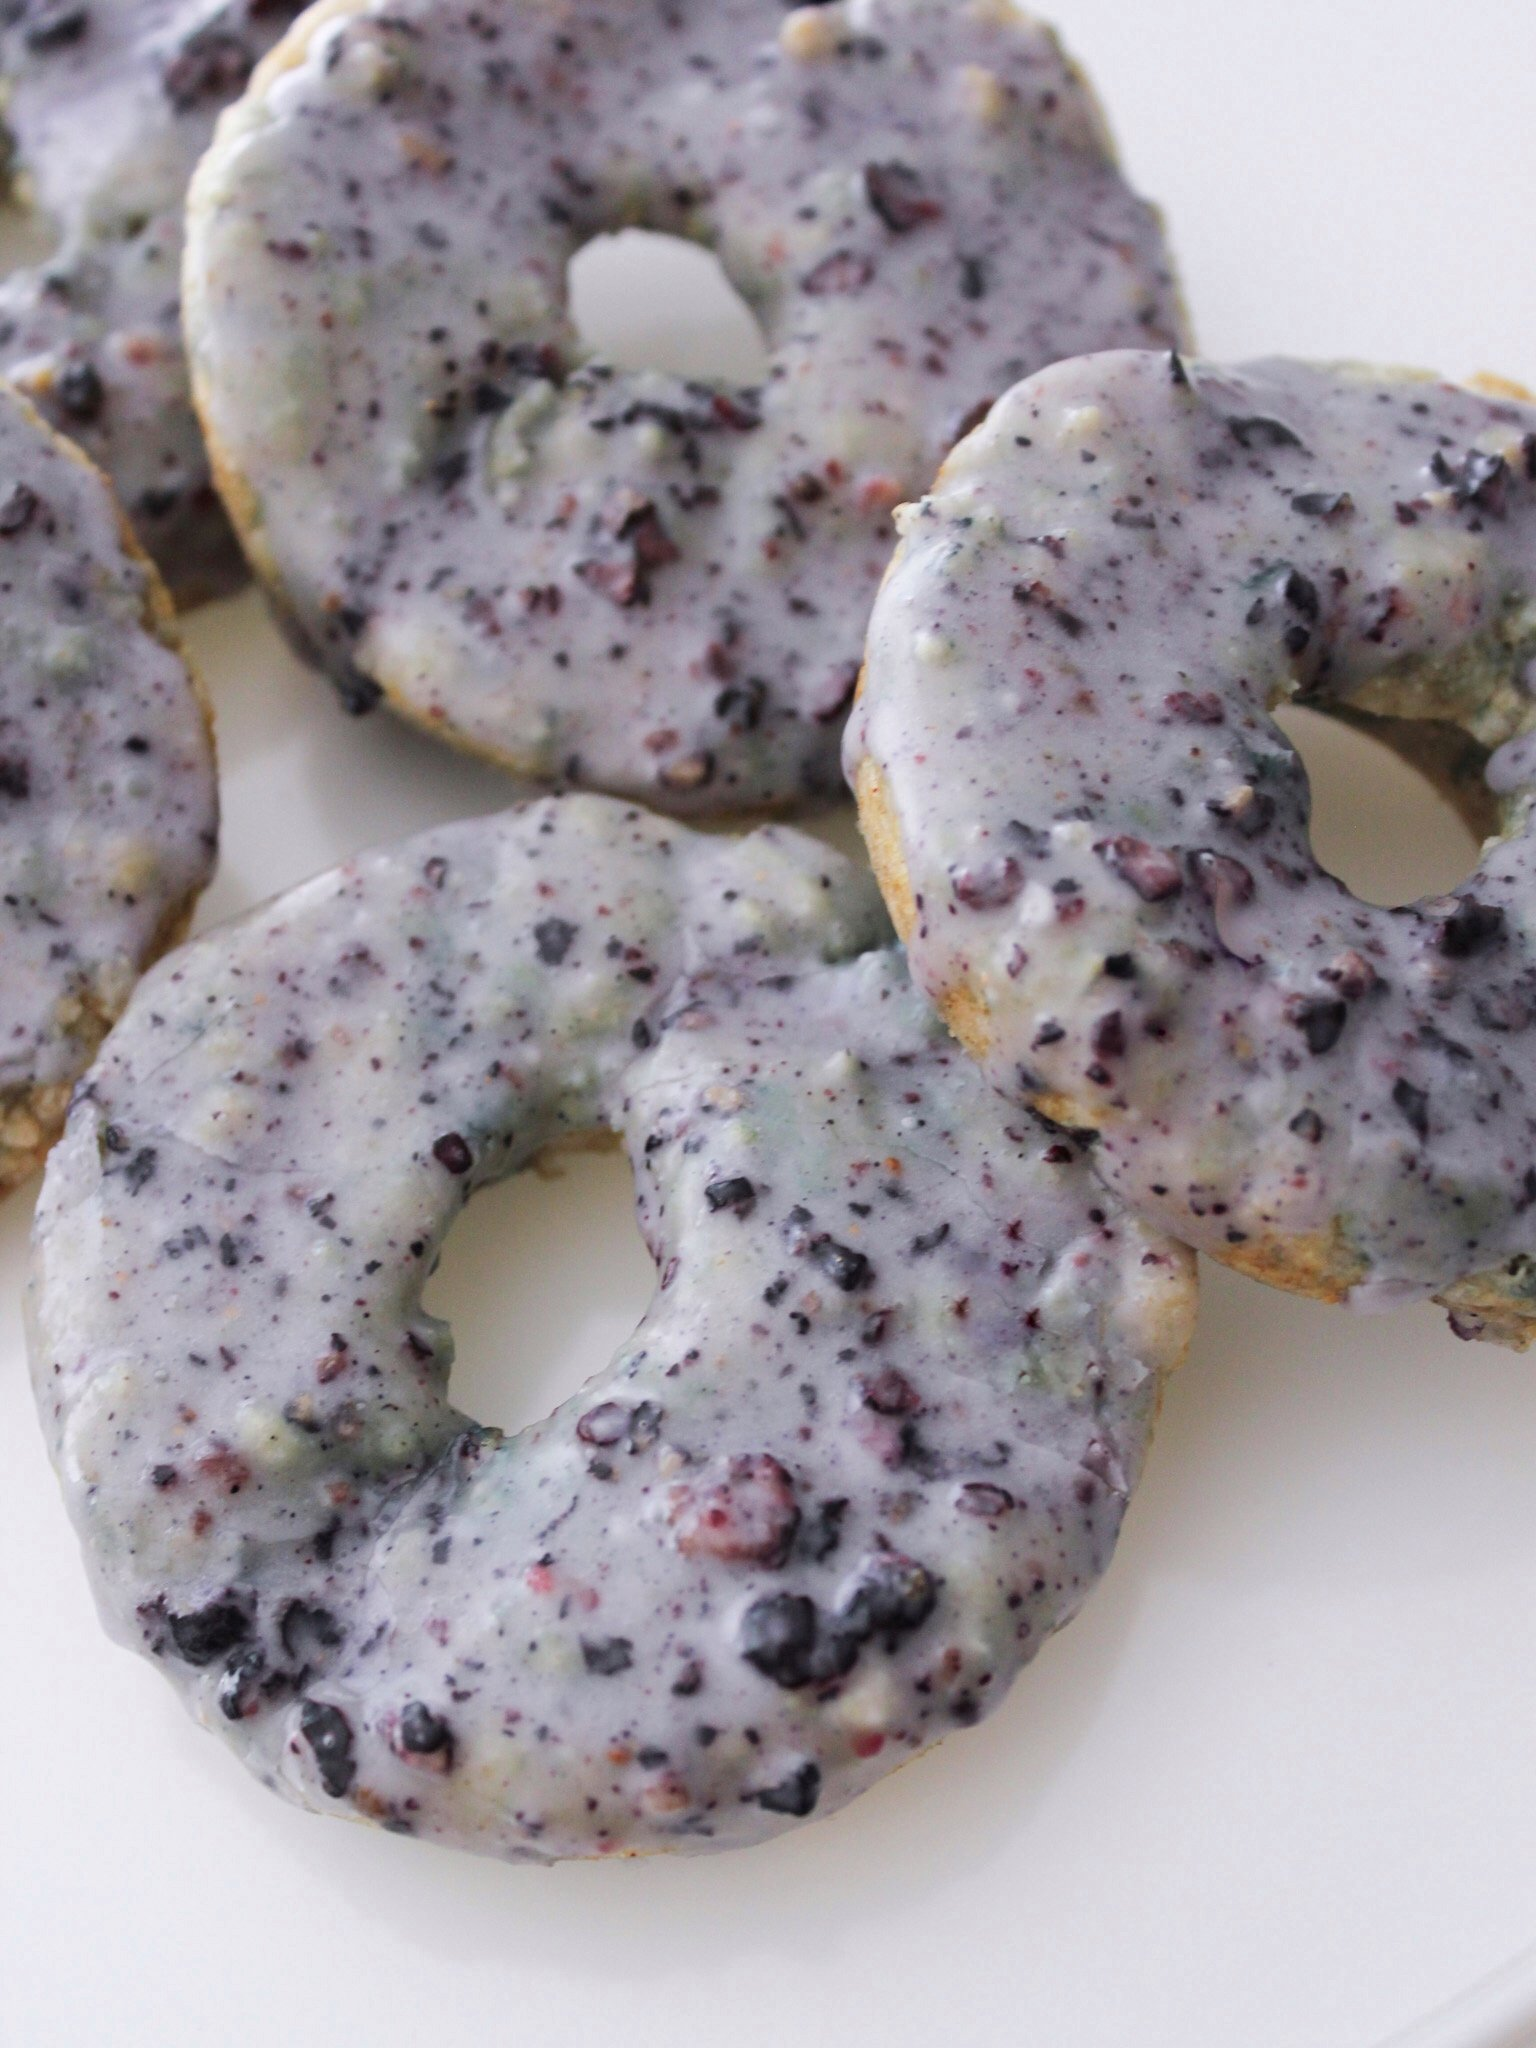 Blueberry donuts on a white plate with a purple glaze.